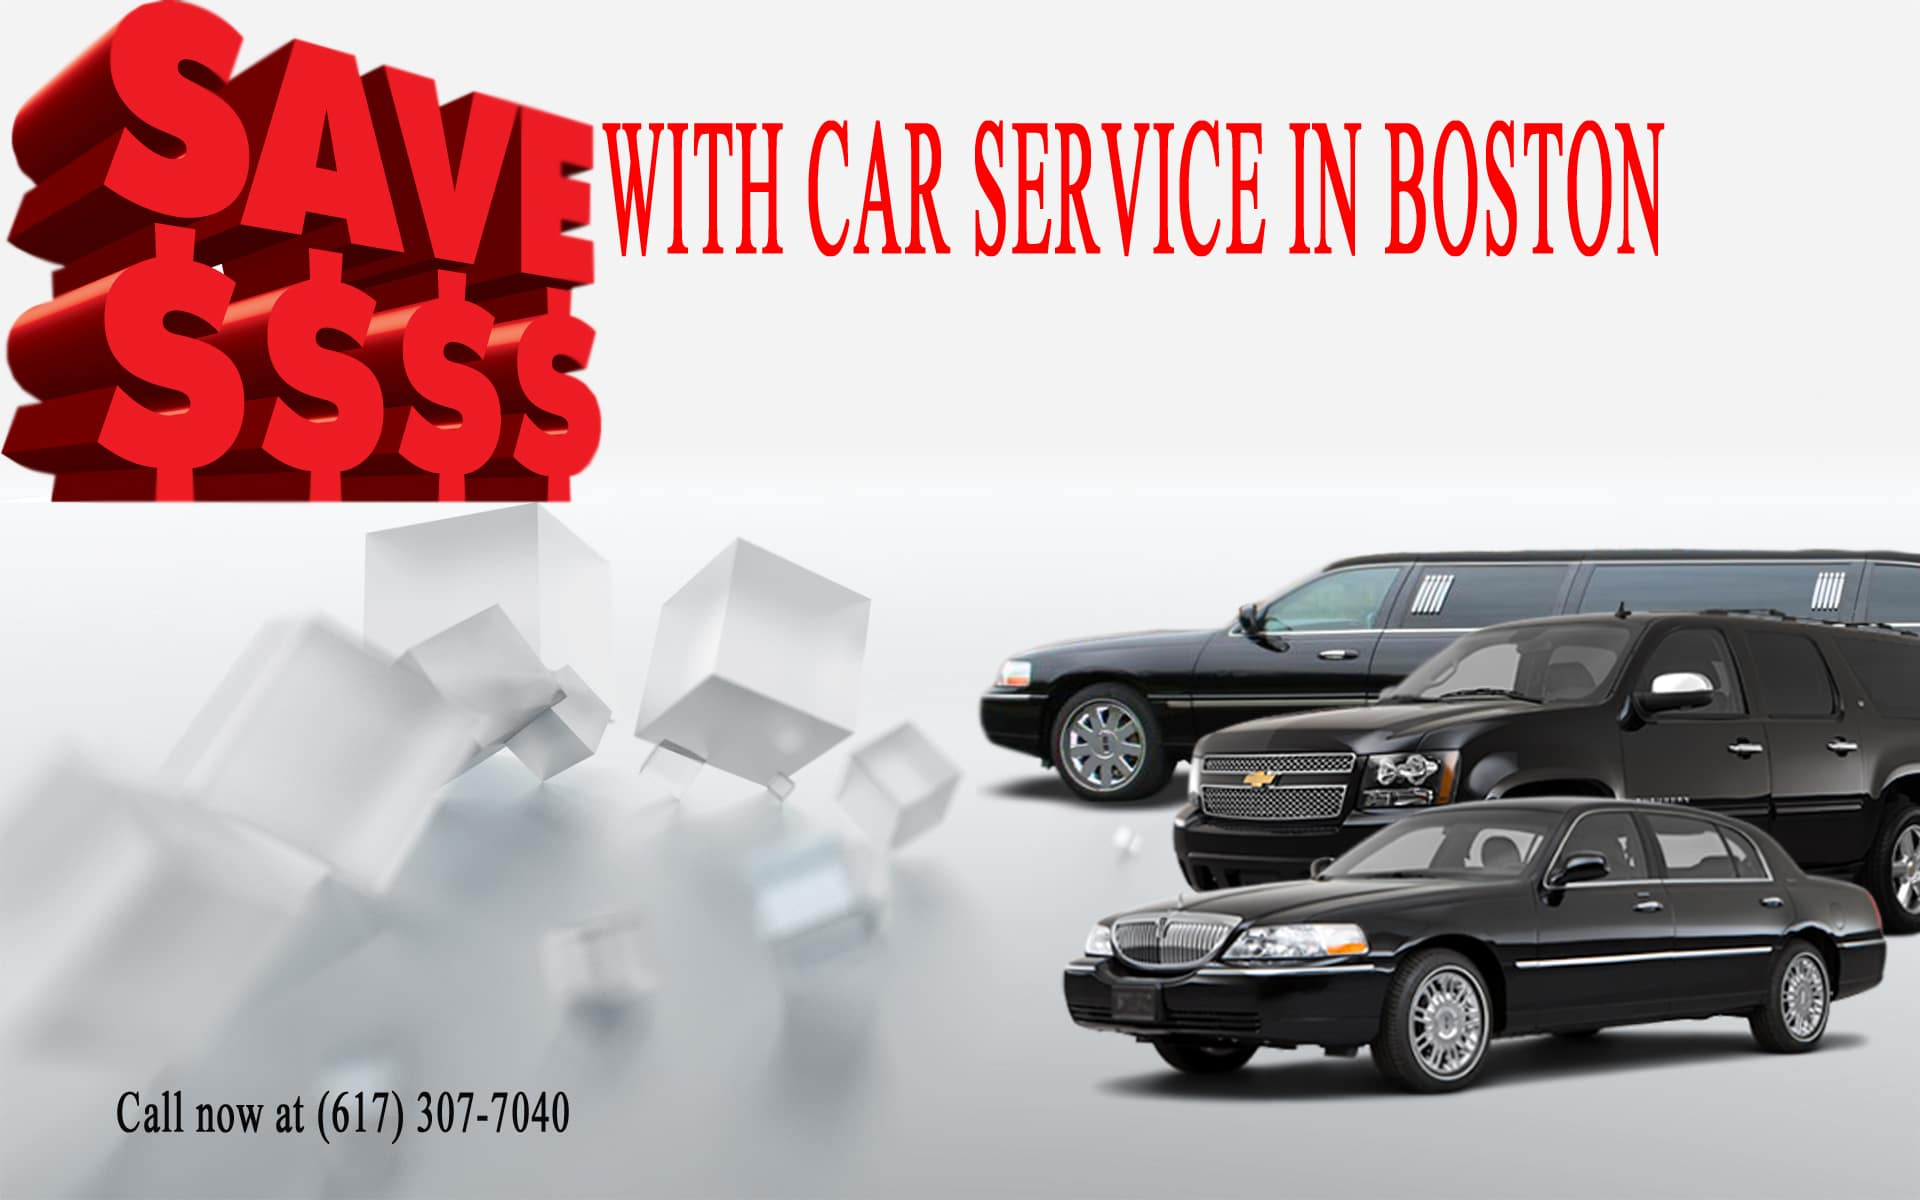 Car Service in Boston